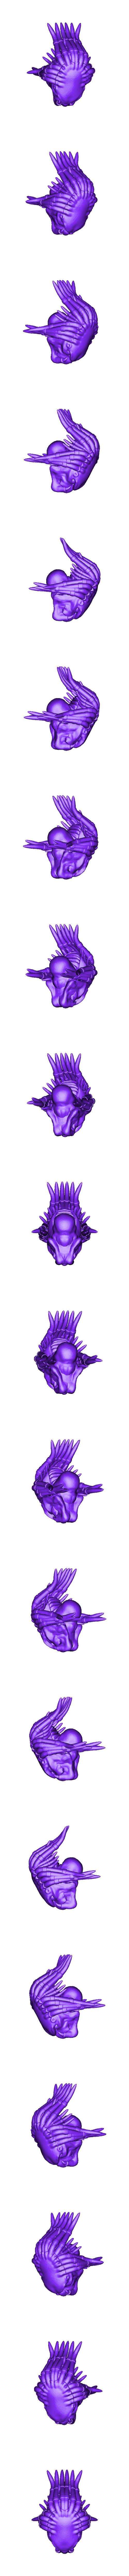 11-UMFc-00010.stl Download free STL file Ugly Mother Flockers -or- Heads for Cannibal Chickens who joined a Cult and love 80's action movies. • 3D printing model, FelixTheCrazy